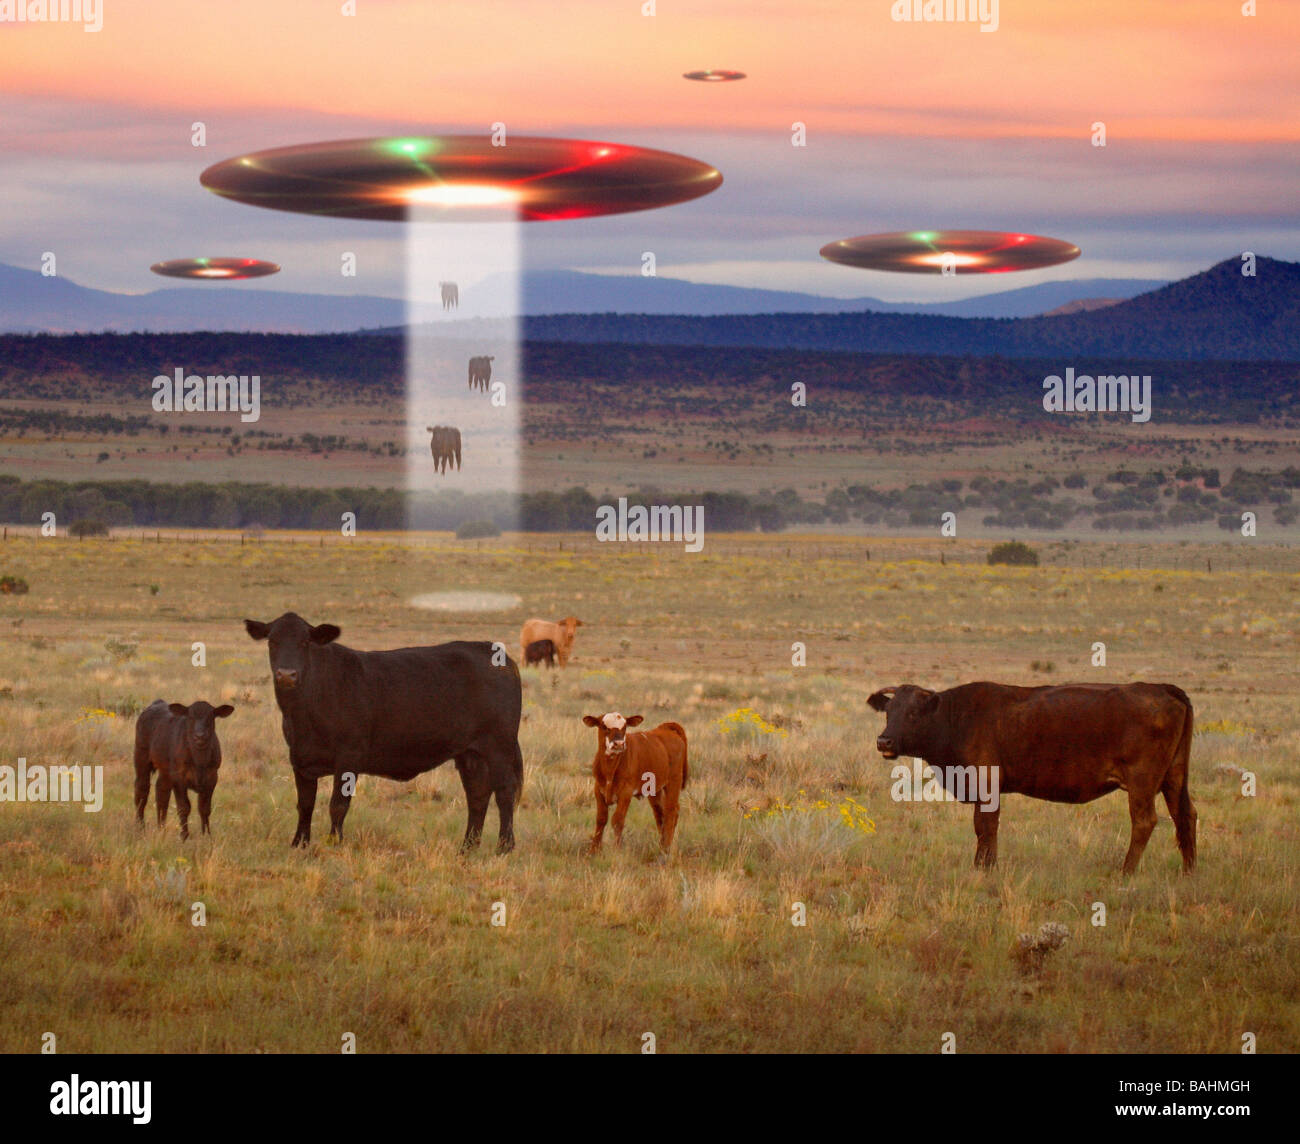 UFOs abducting cows - Stock Image